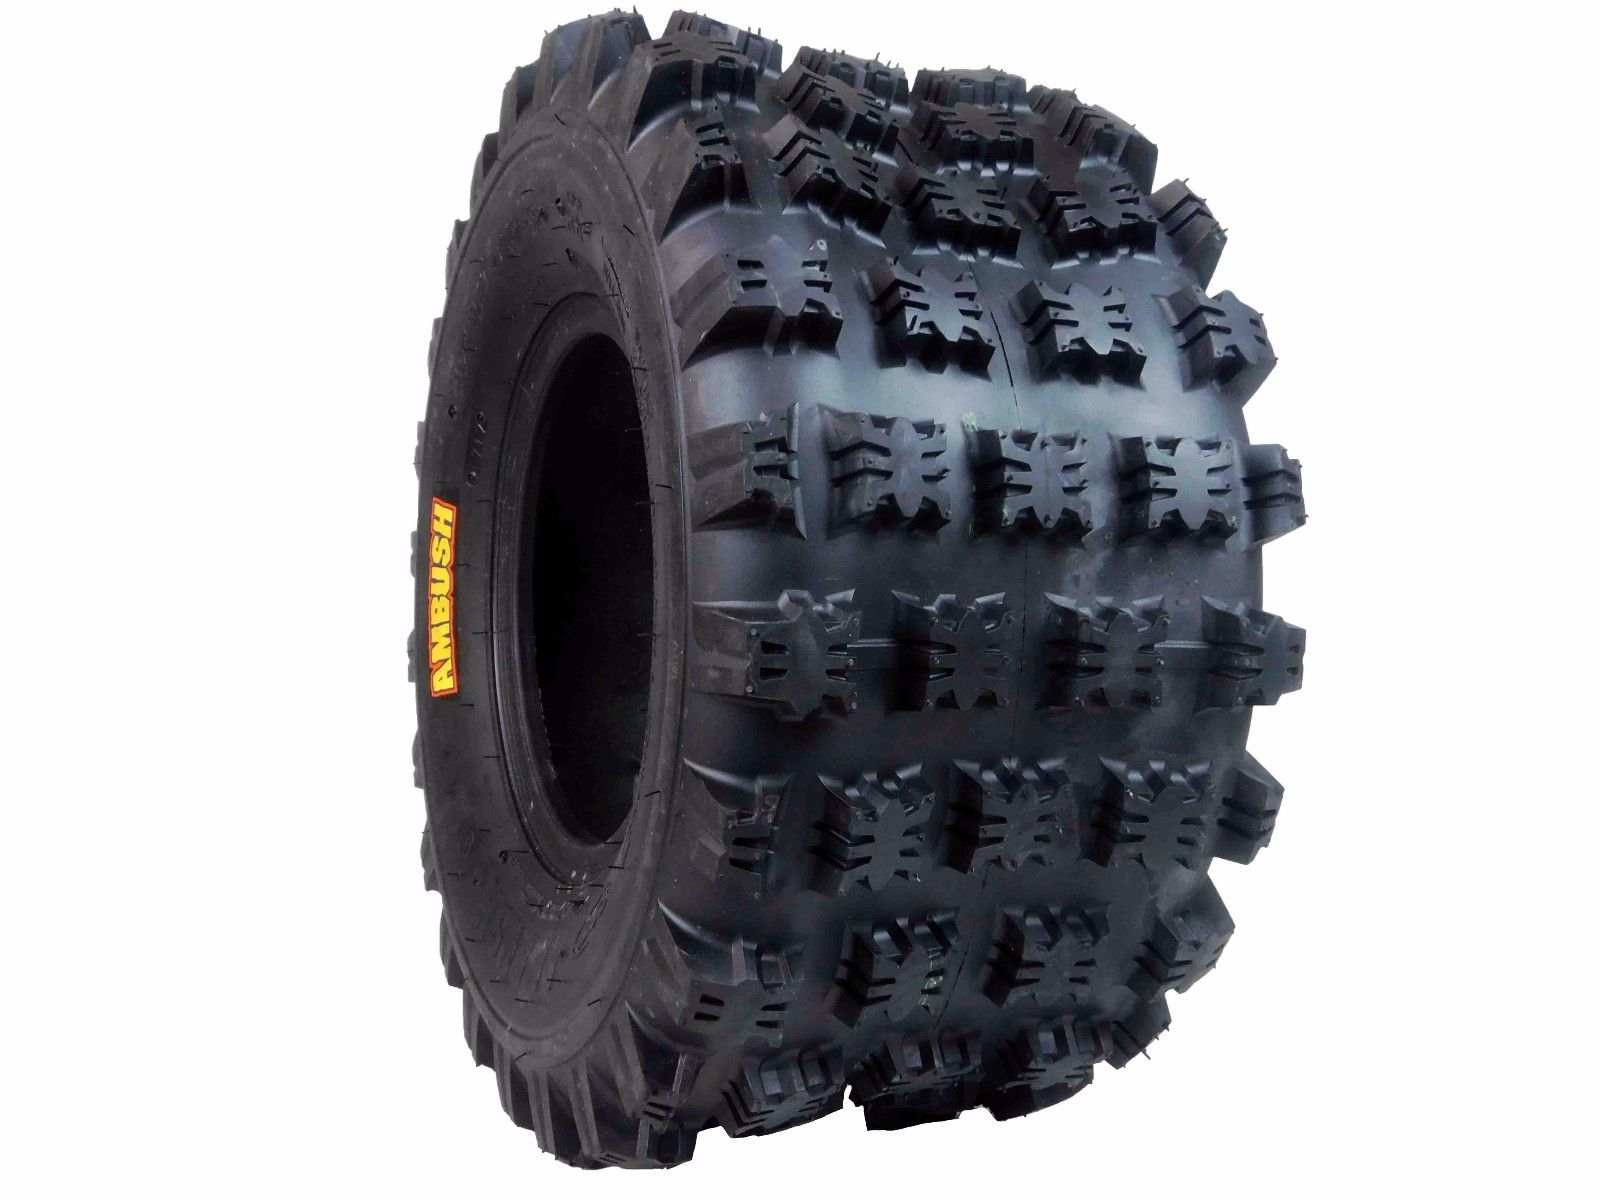 Ambush-20x10-9-ATV-Tires-2-Pack-Rear-4ply-image-2